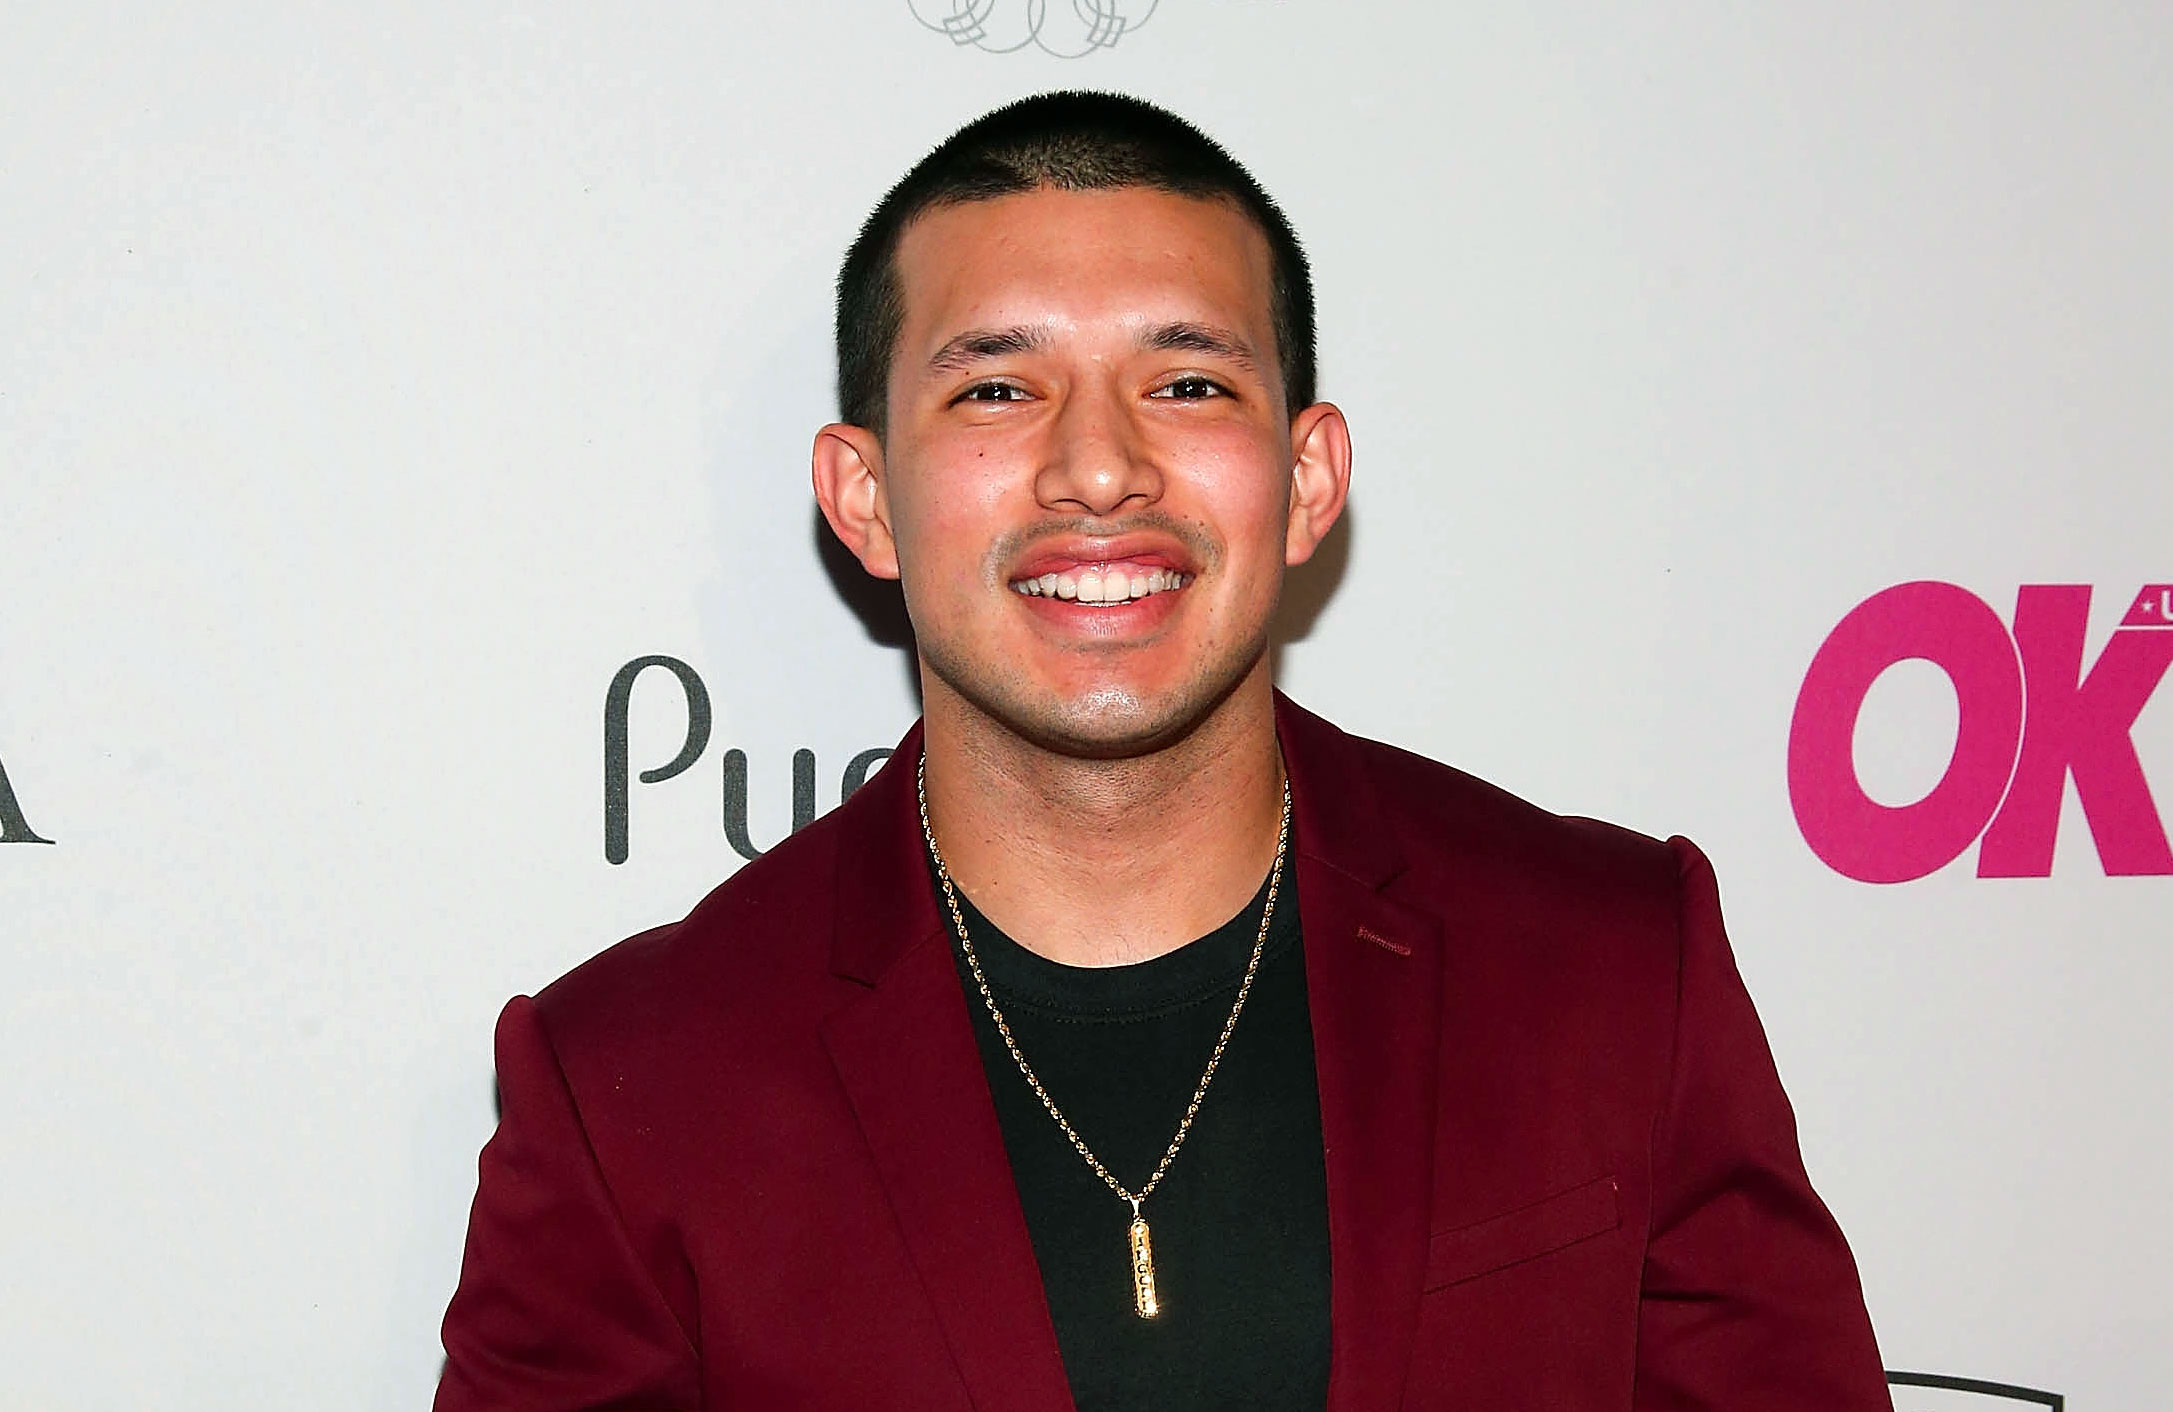 Javi Marroquin Propose to GF Lauren Comeau This Year - Javi Marroquin